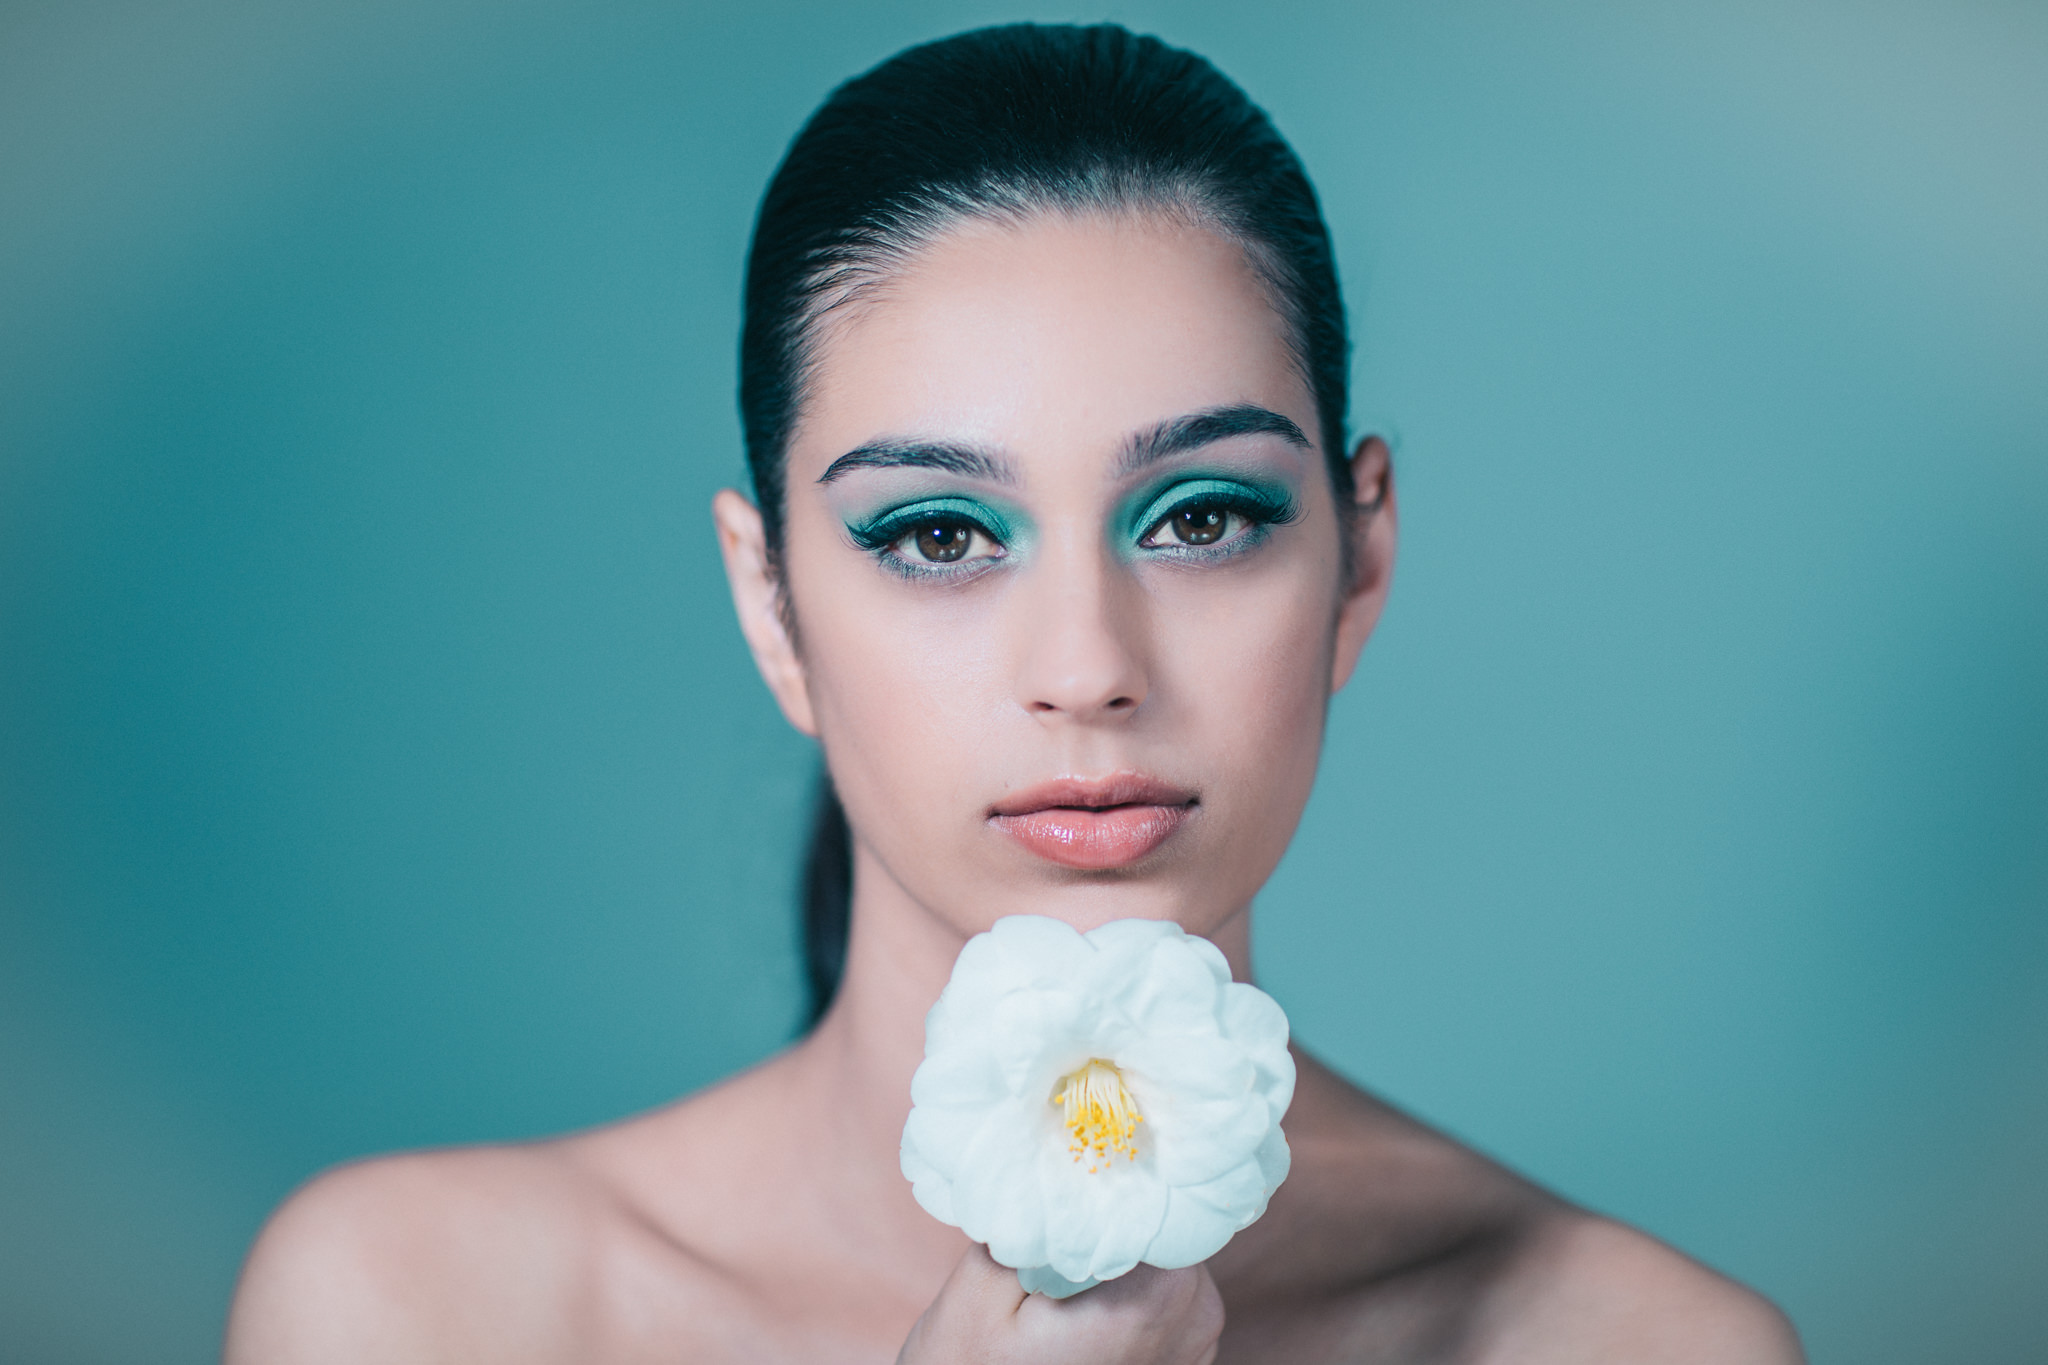 beauty photographer in melbourne, australia